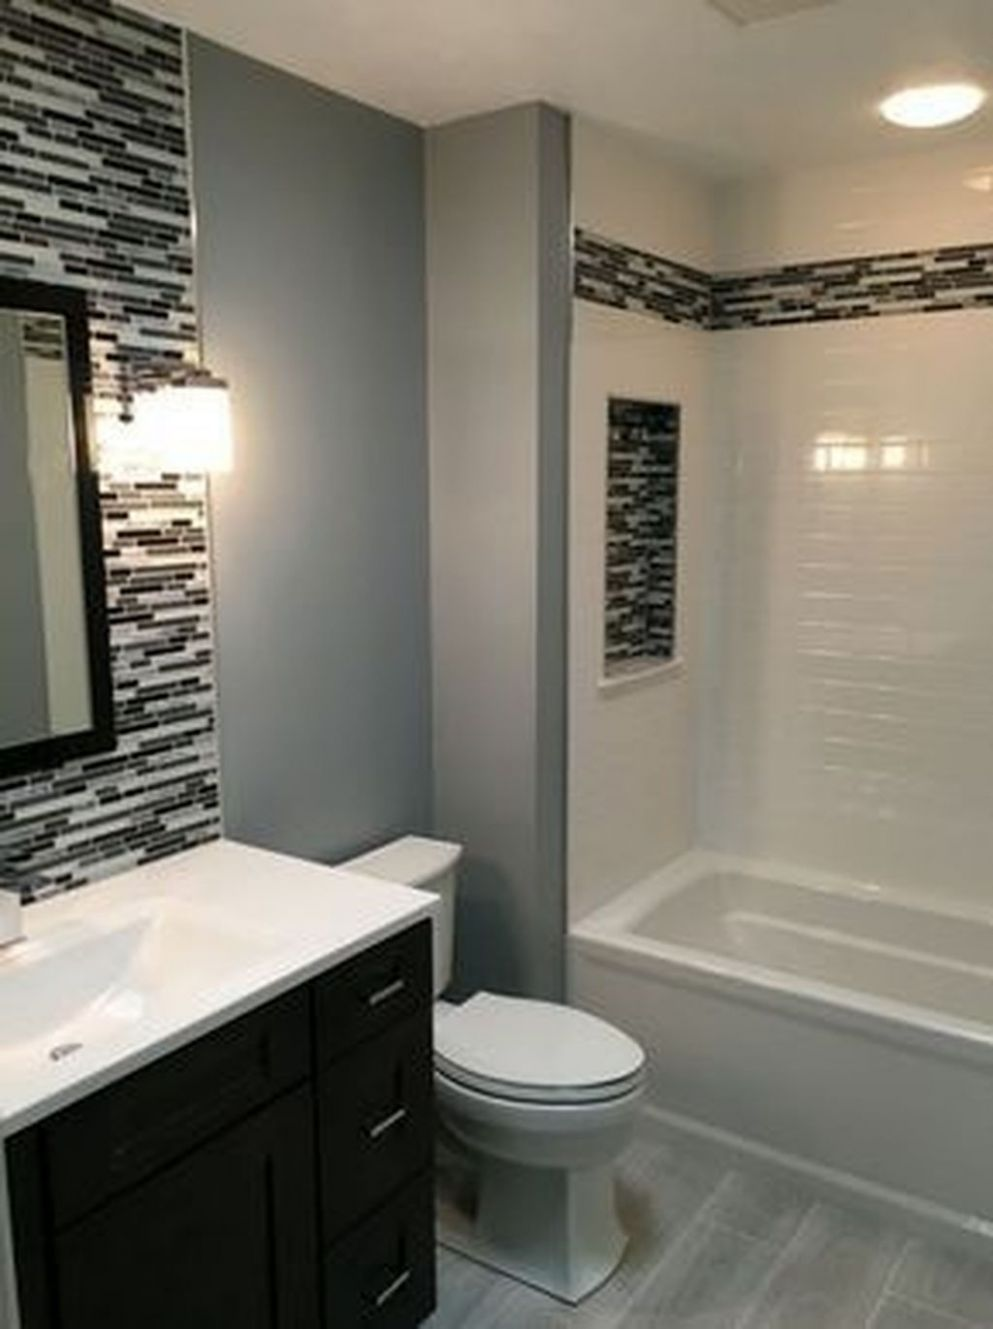 11+ Inexpensive Small Bathroom Remodel Ideas On A Budget - TRENDECORS